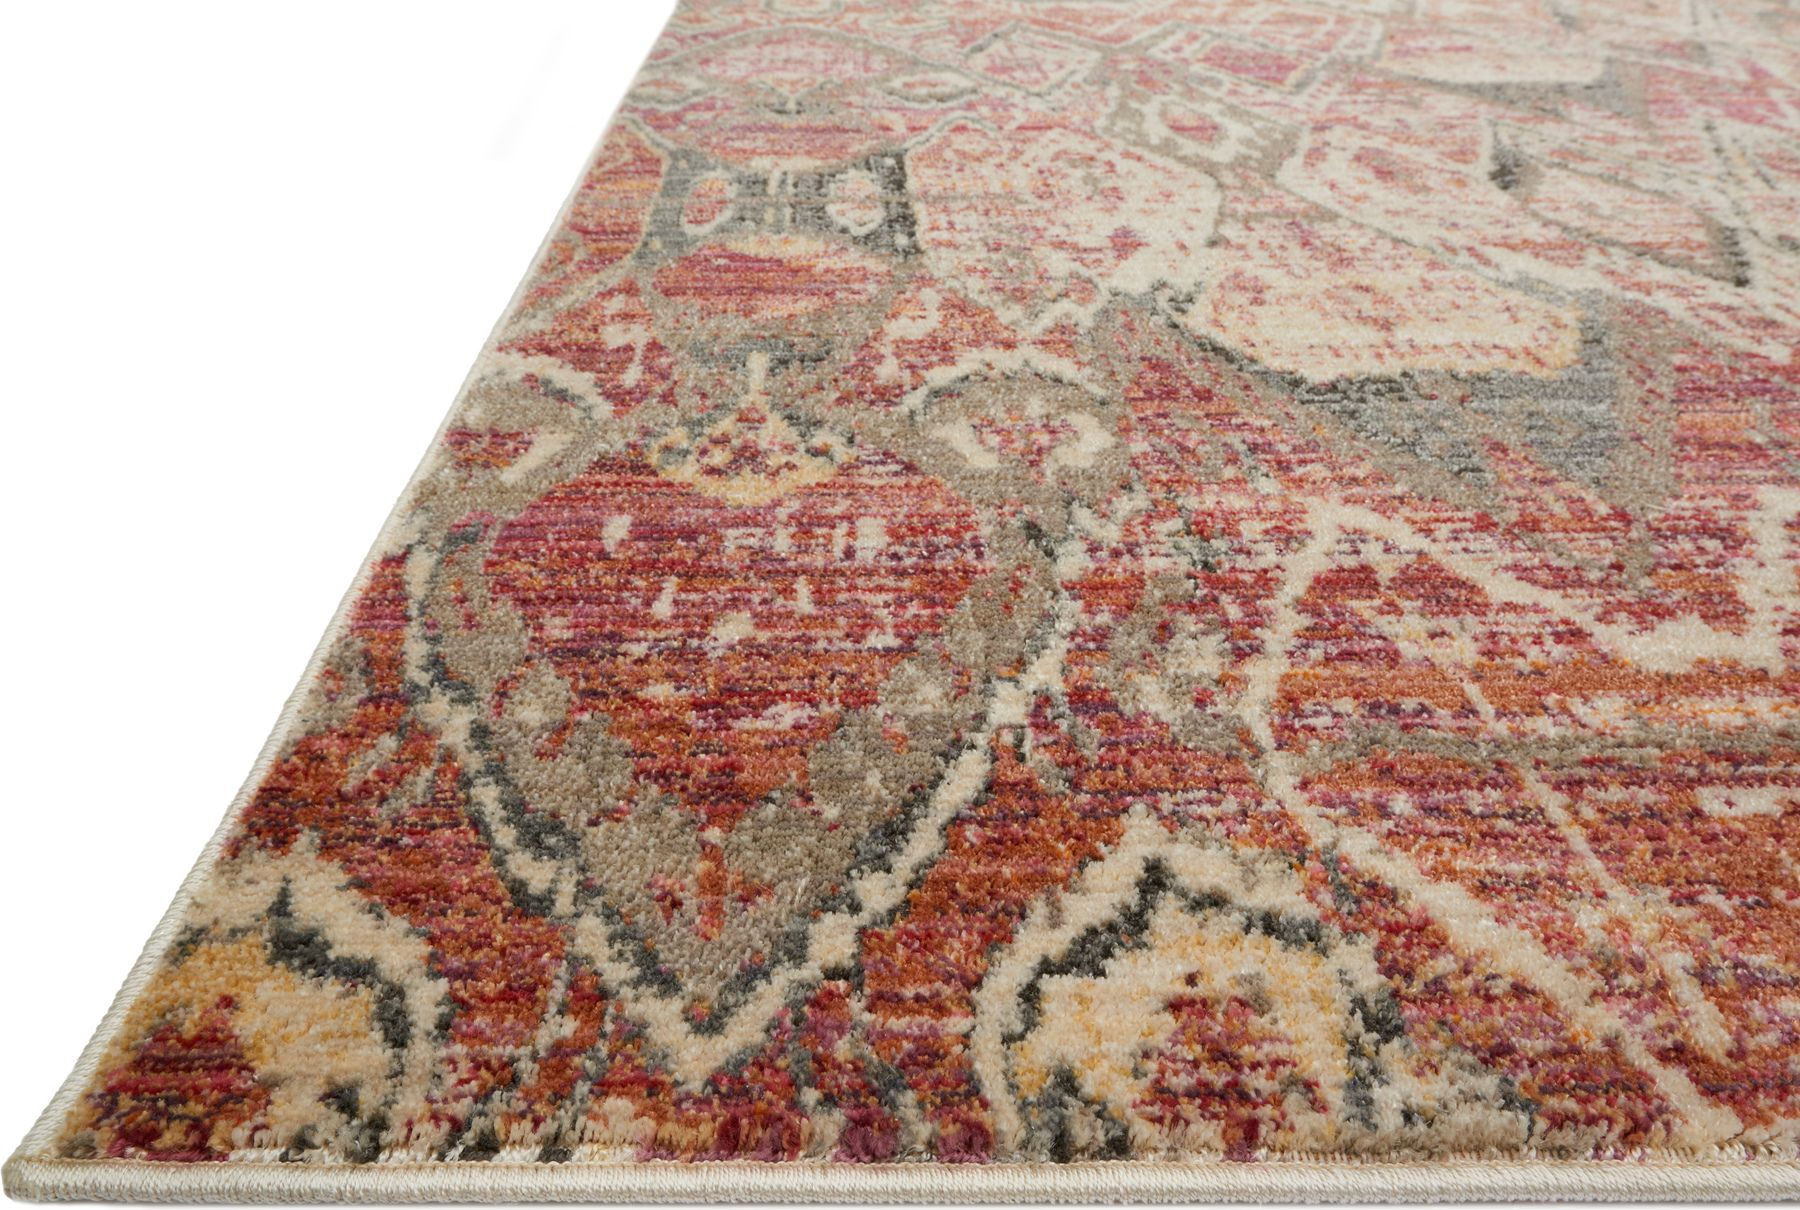 Javari Blaze Rug Color Berry Ivory Size 3 7 X 5 2 In 2020 Colorful Rugs Bohemian Rug Rugs